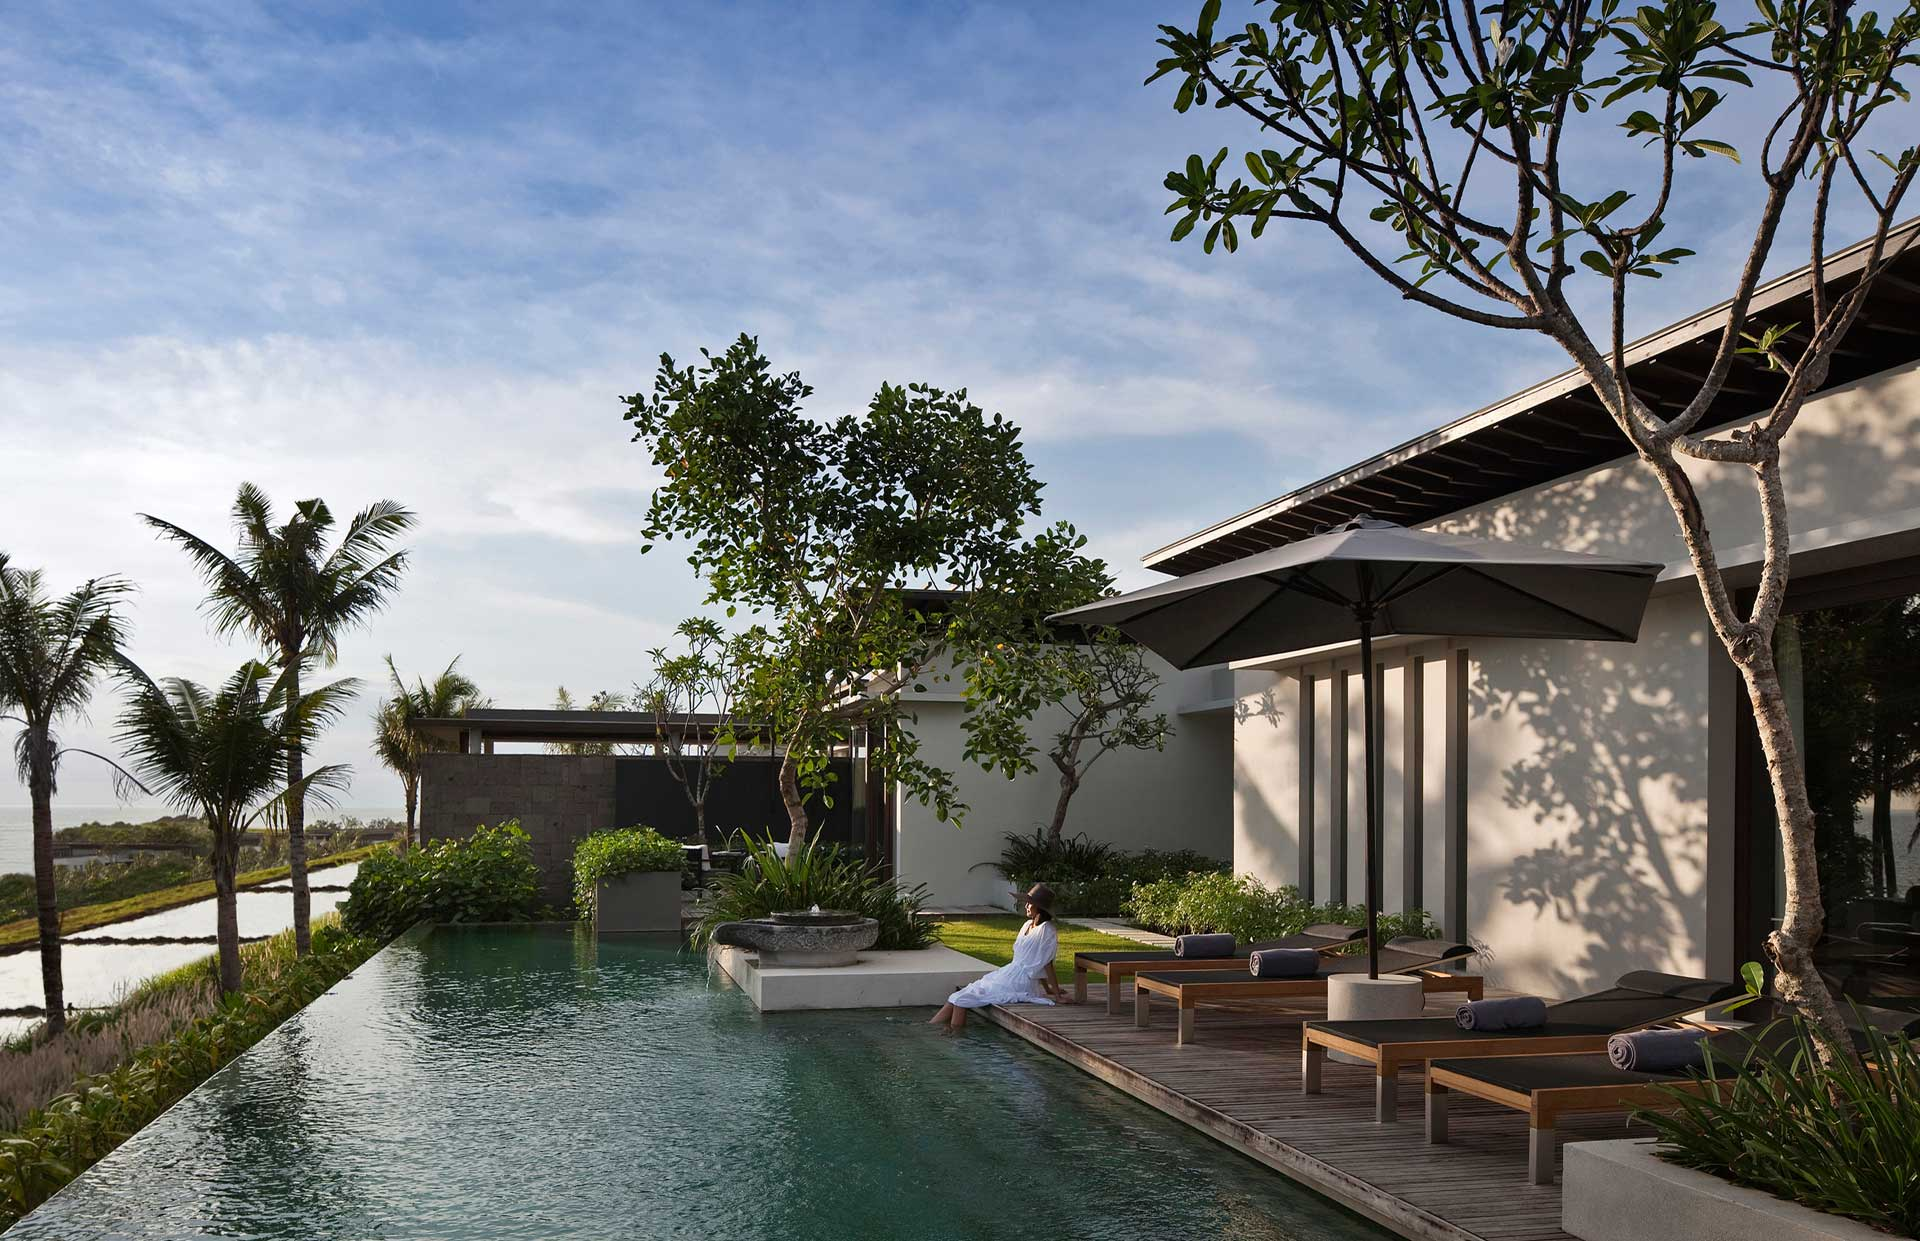 STAY: ALILA VILLAS SOORI